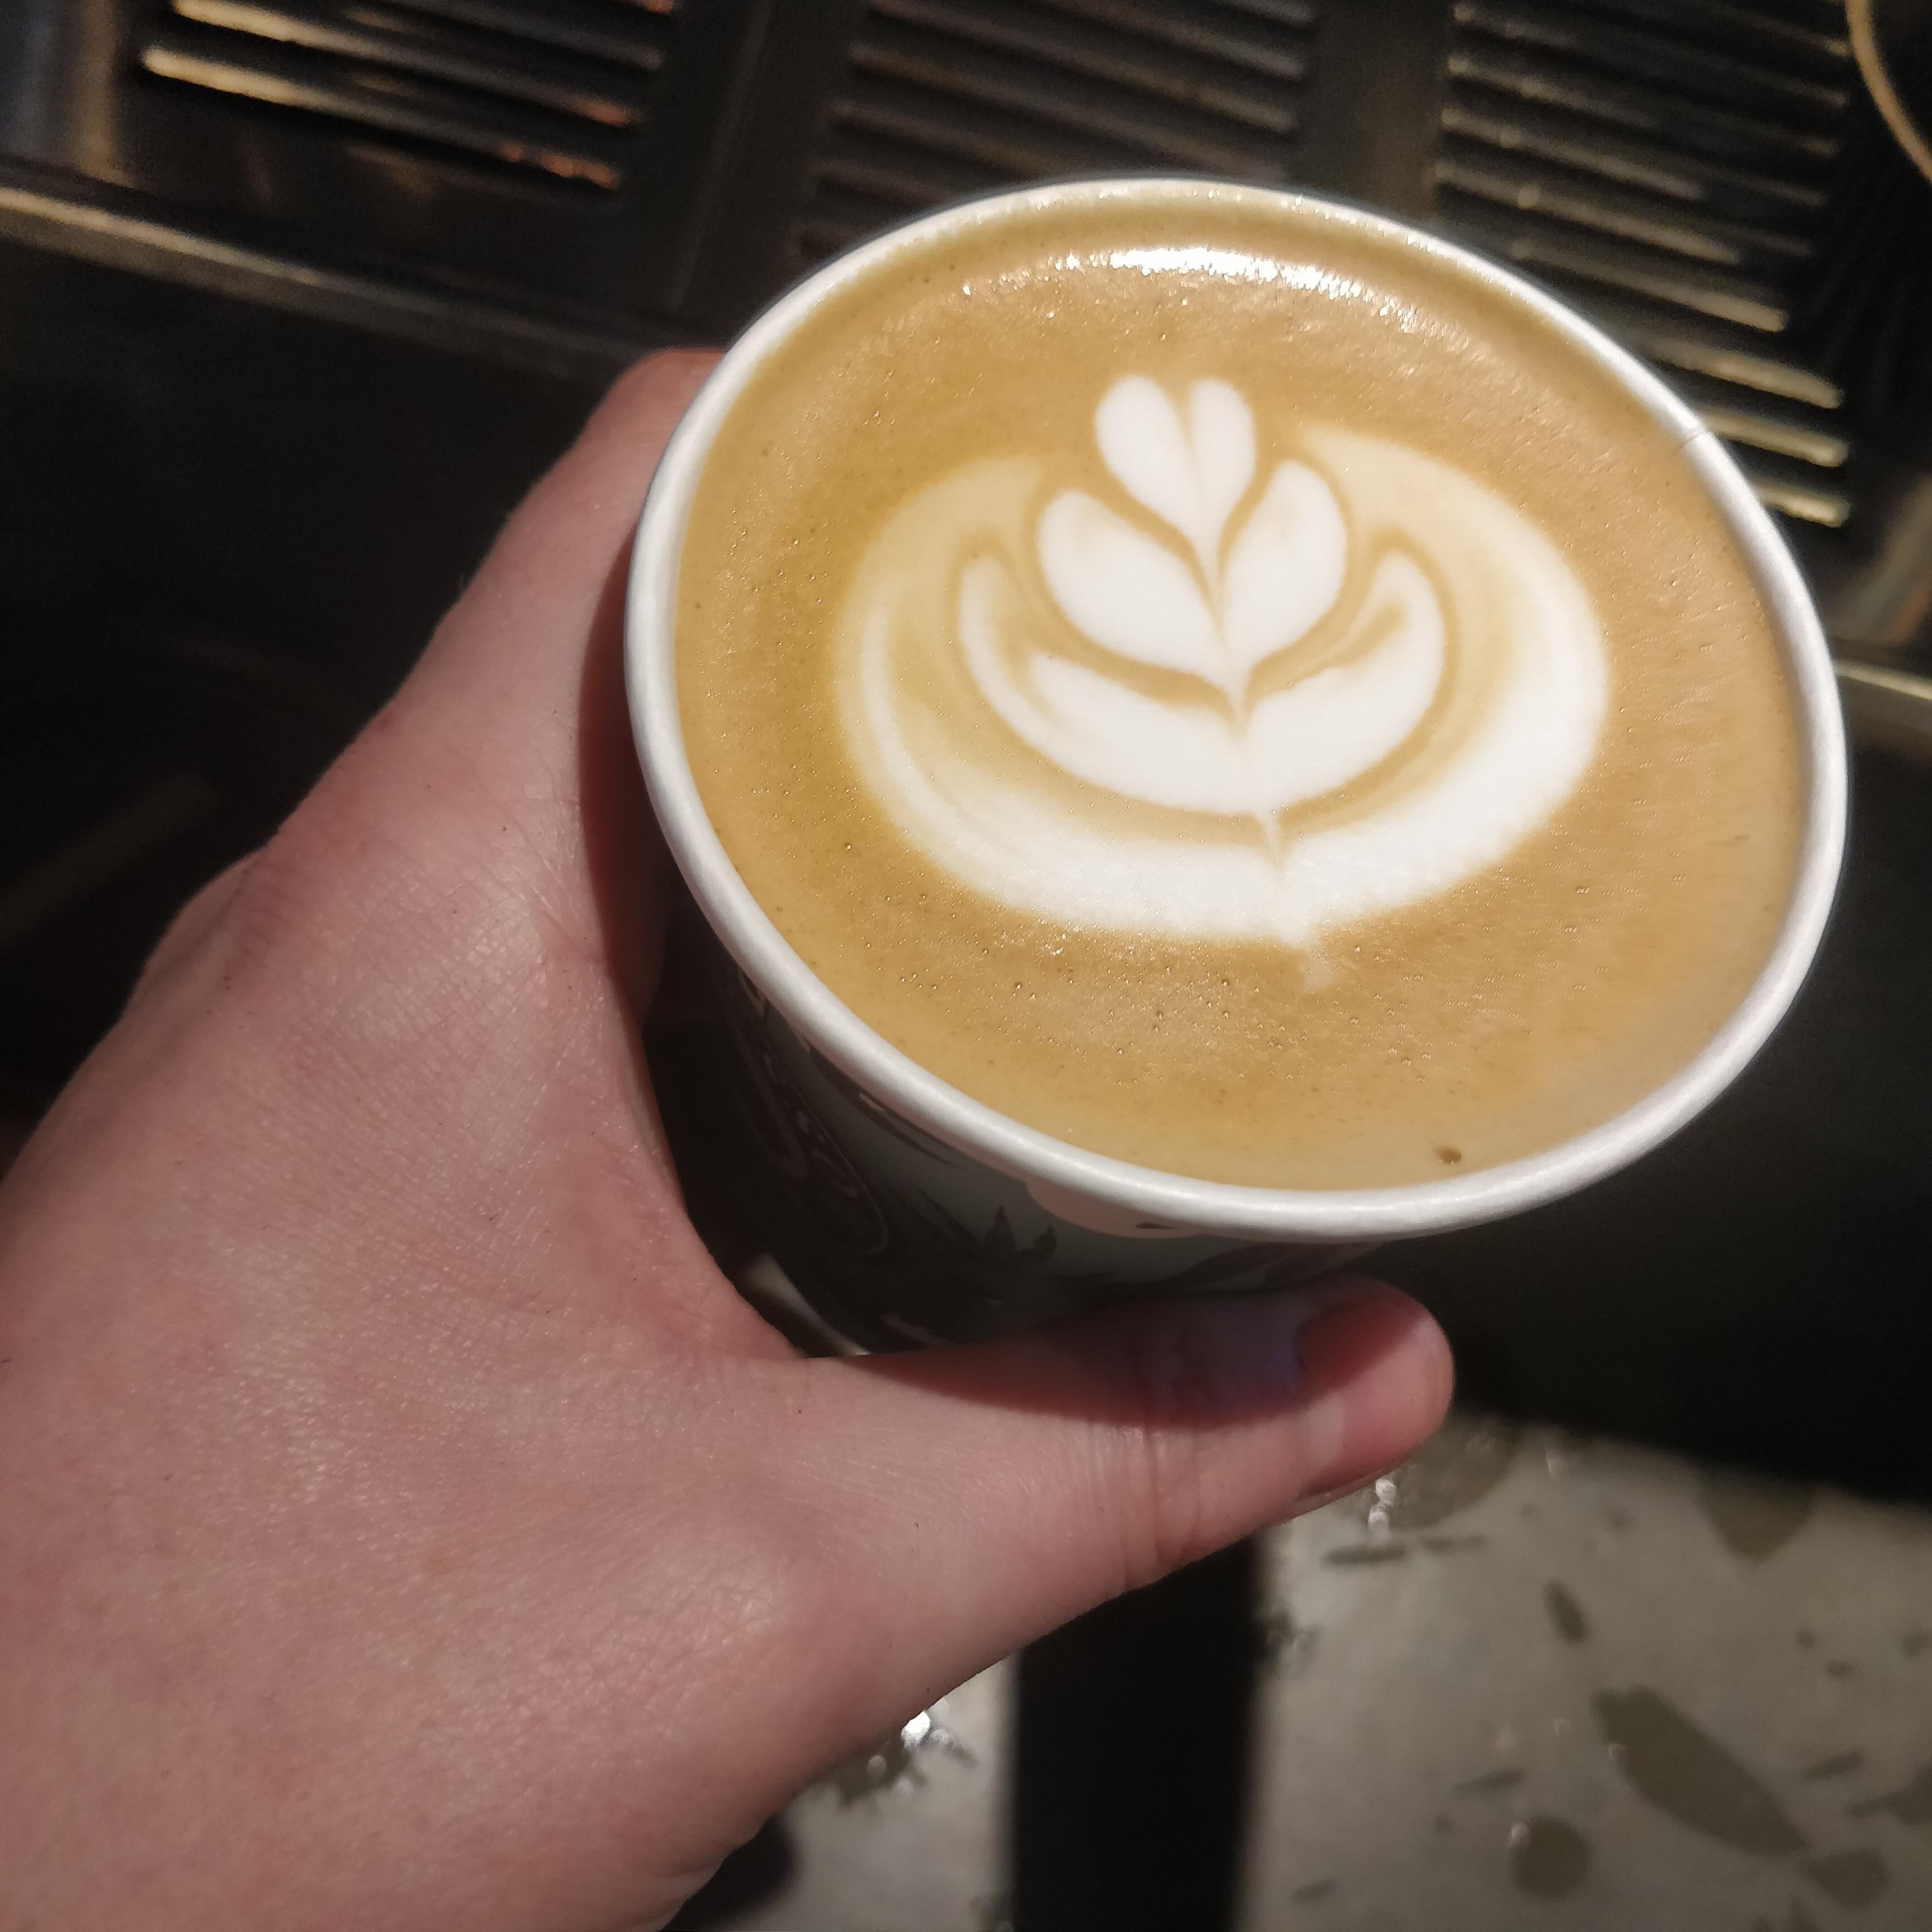 I Had To Give Up My Amazing Part Time Job To Focus On My Engineering Degree Ill Miss Making These Pours So Much Coffee Coffee Addict Best Coffee Coffee Art